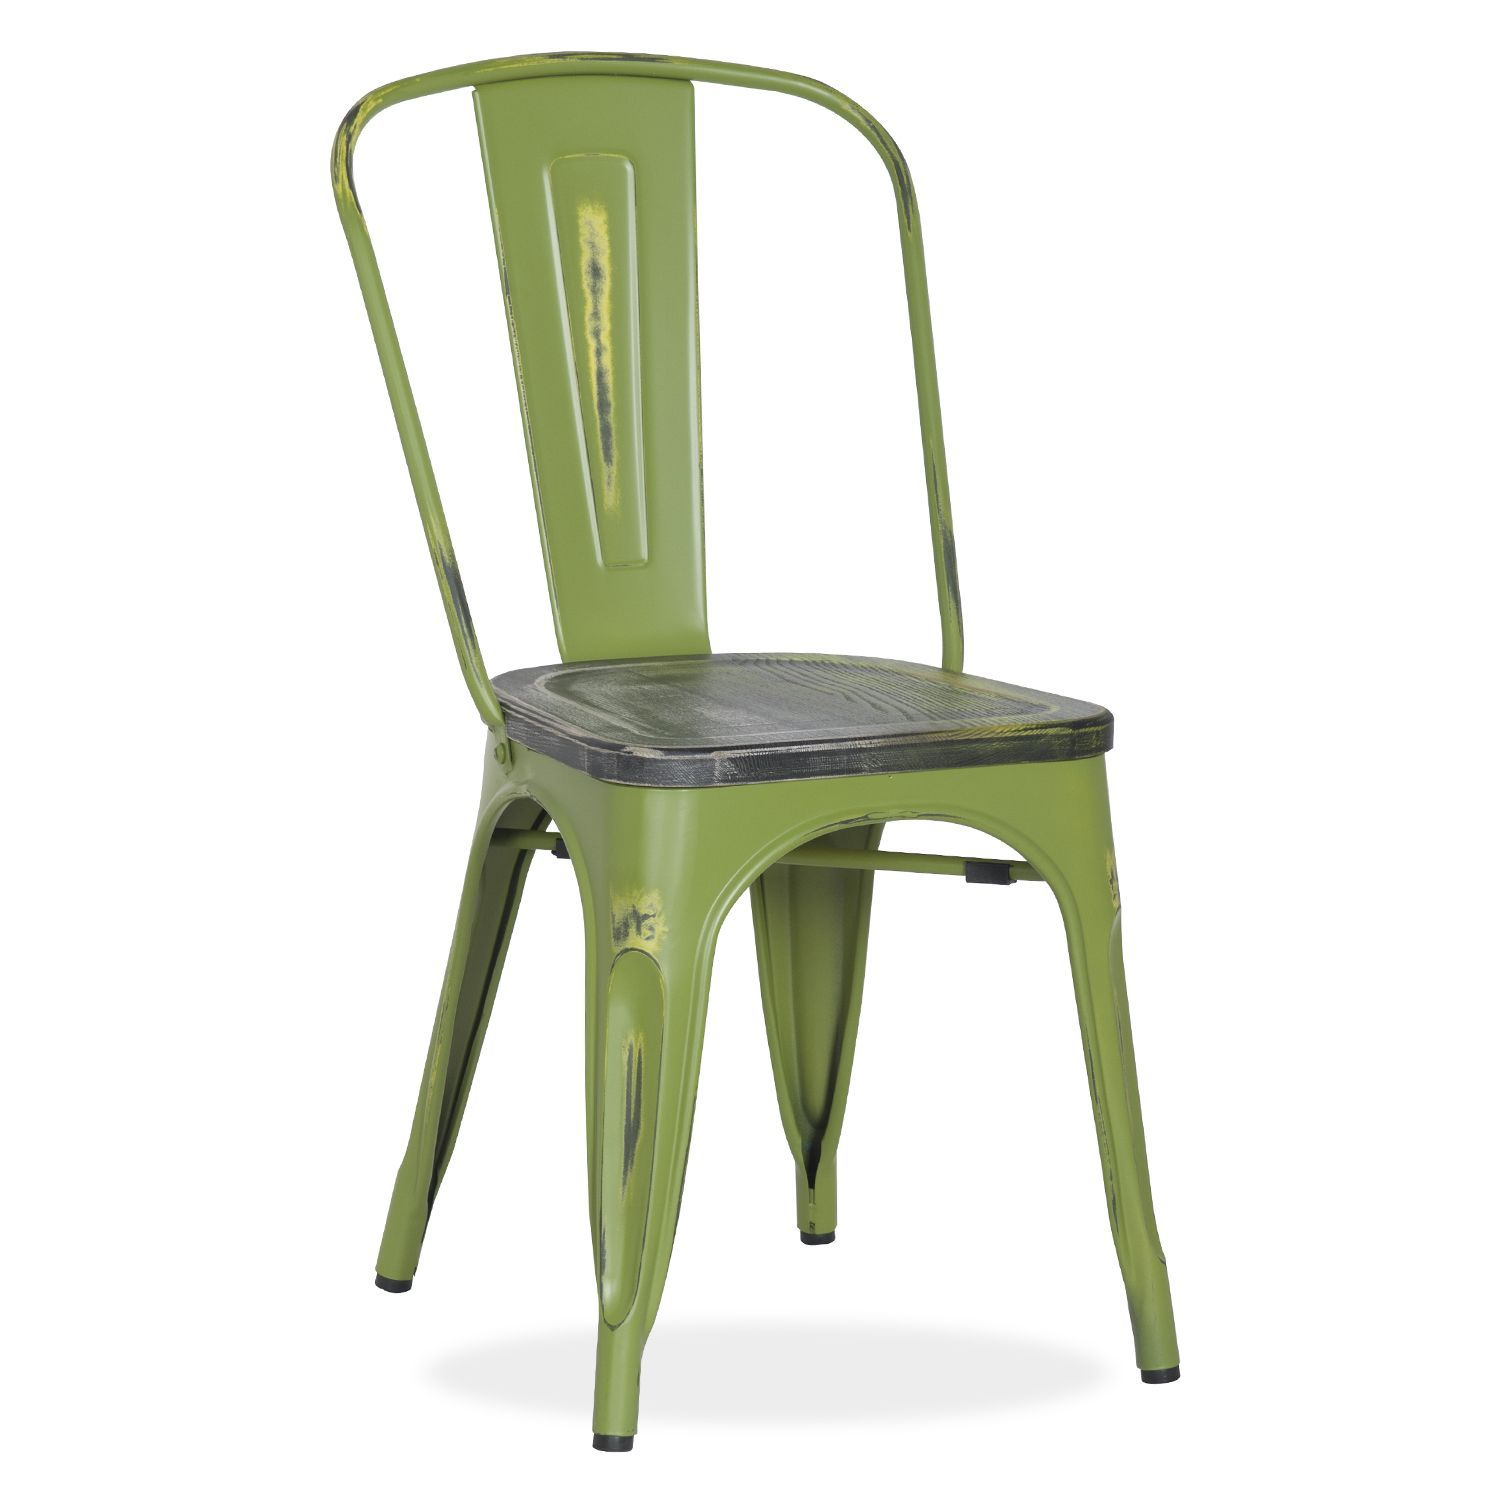 Yellow frame vintage sheet metal french cafe and bistro armless chairs - Silla Con Asiento De Madera Antique Terek Vintage Sillas Met Licas Tolix